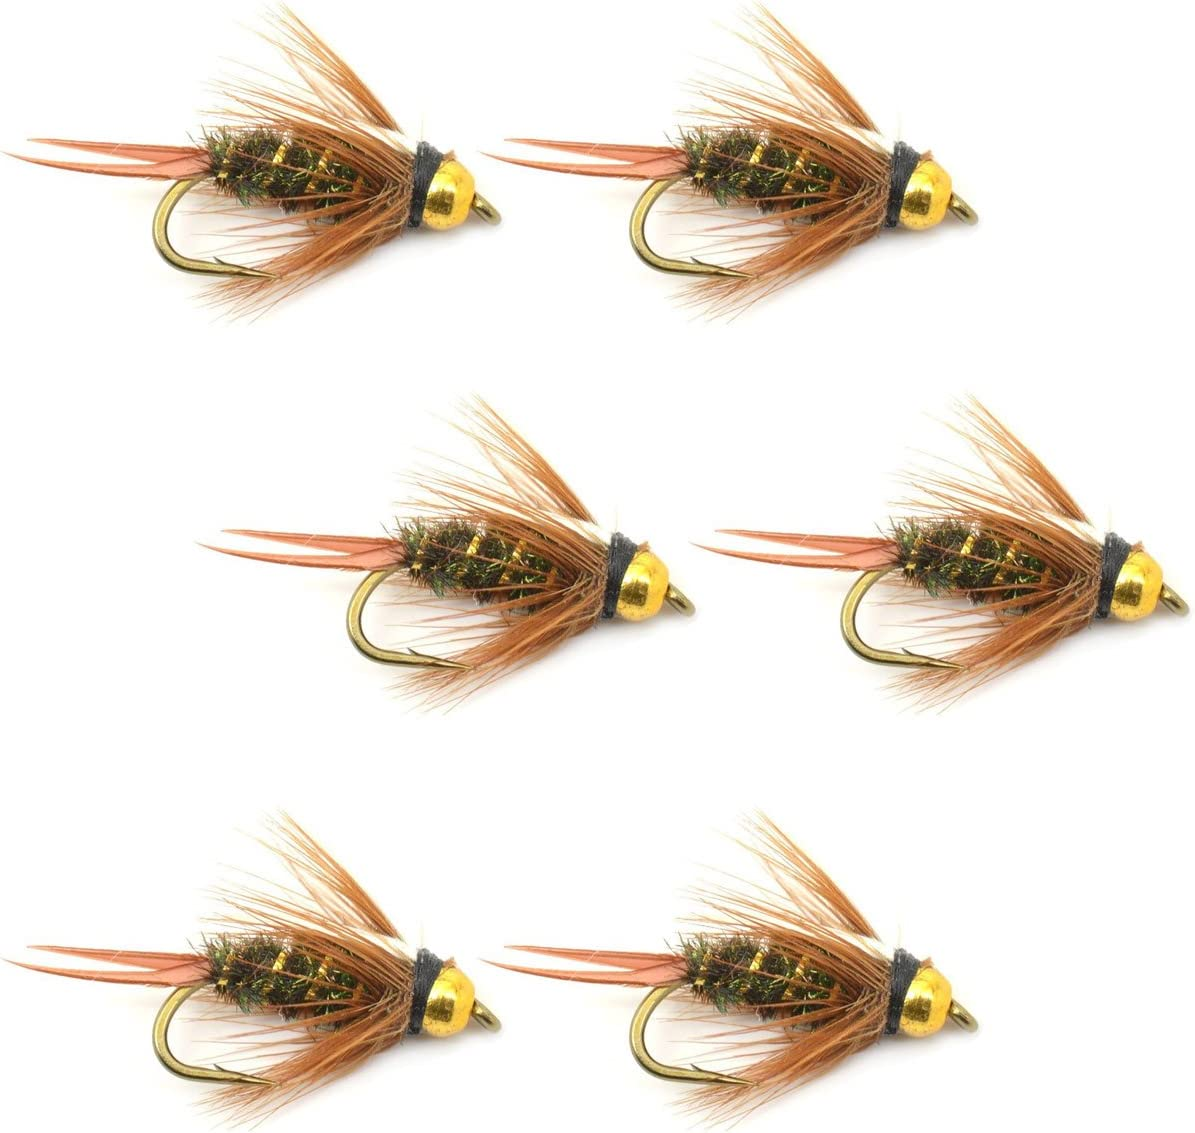 The Popular brand Fly Fishing Place Bead Prince trend rank - Nymph Head Flies